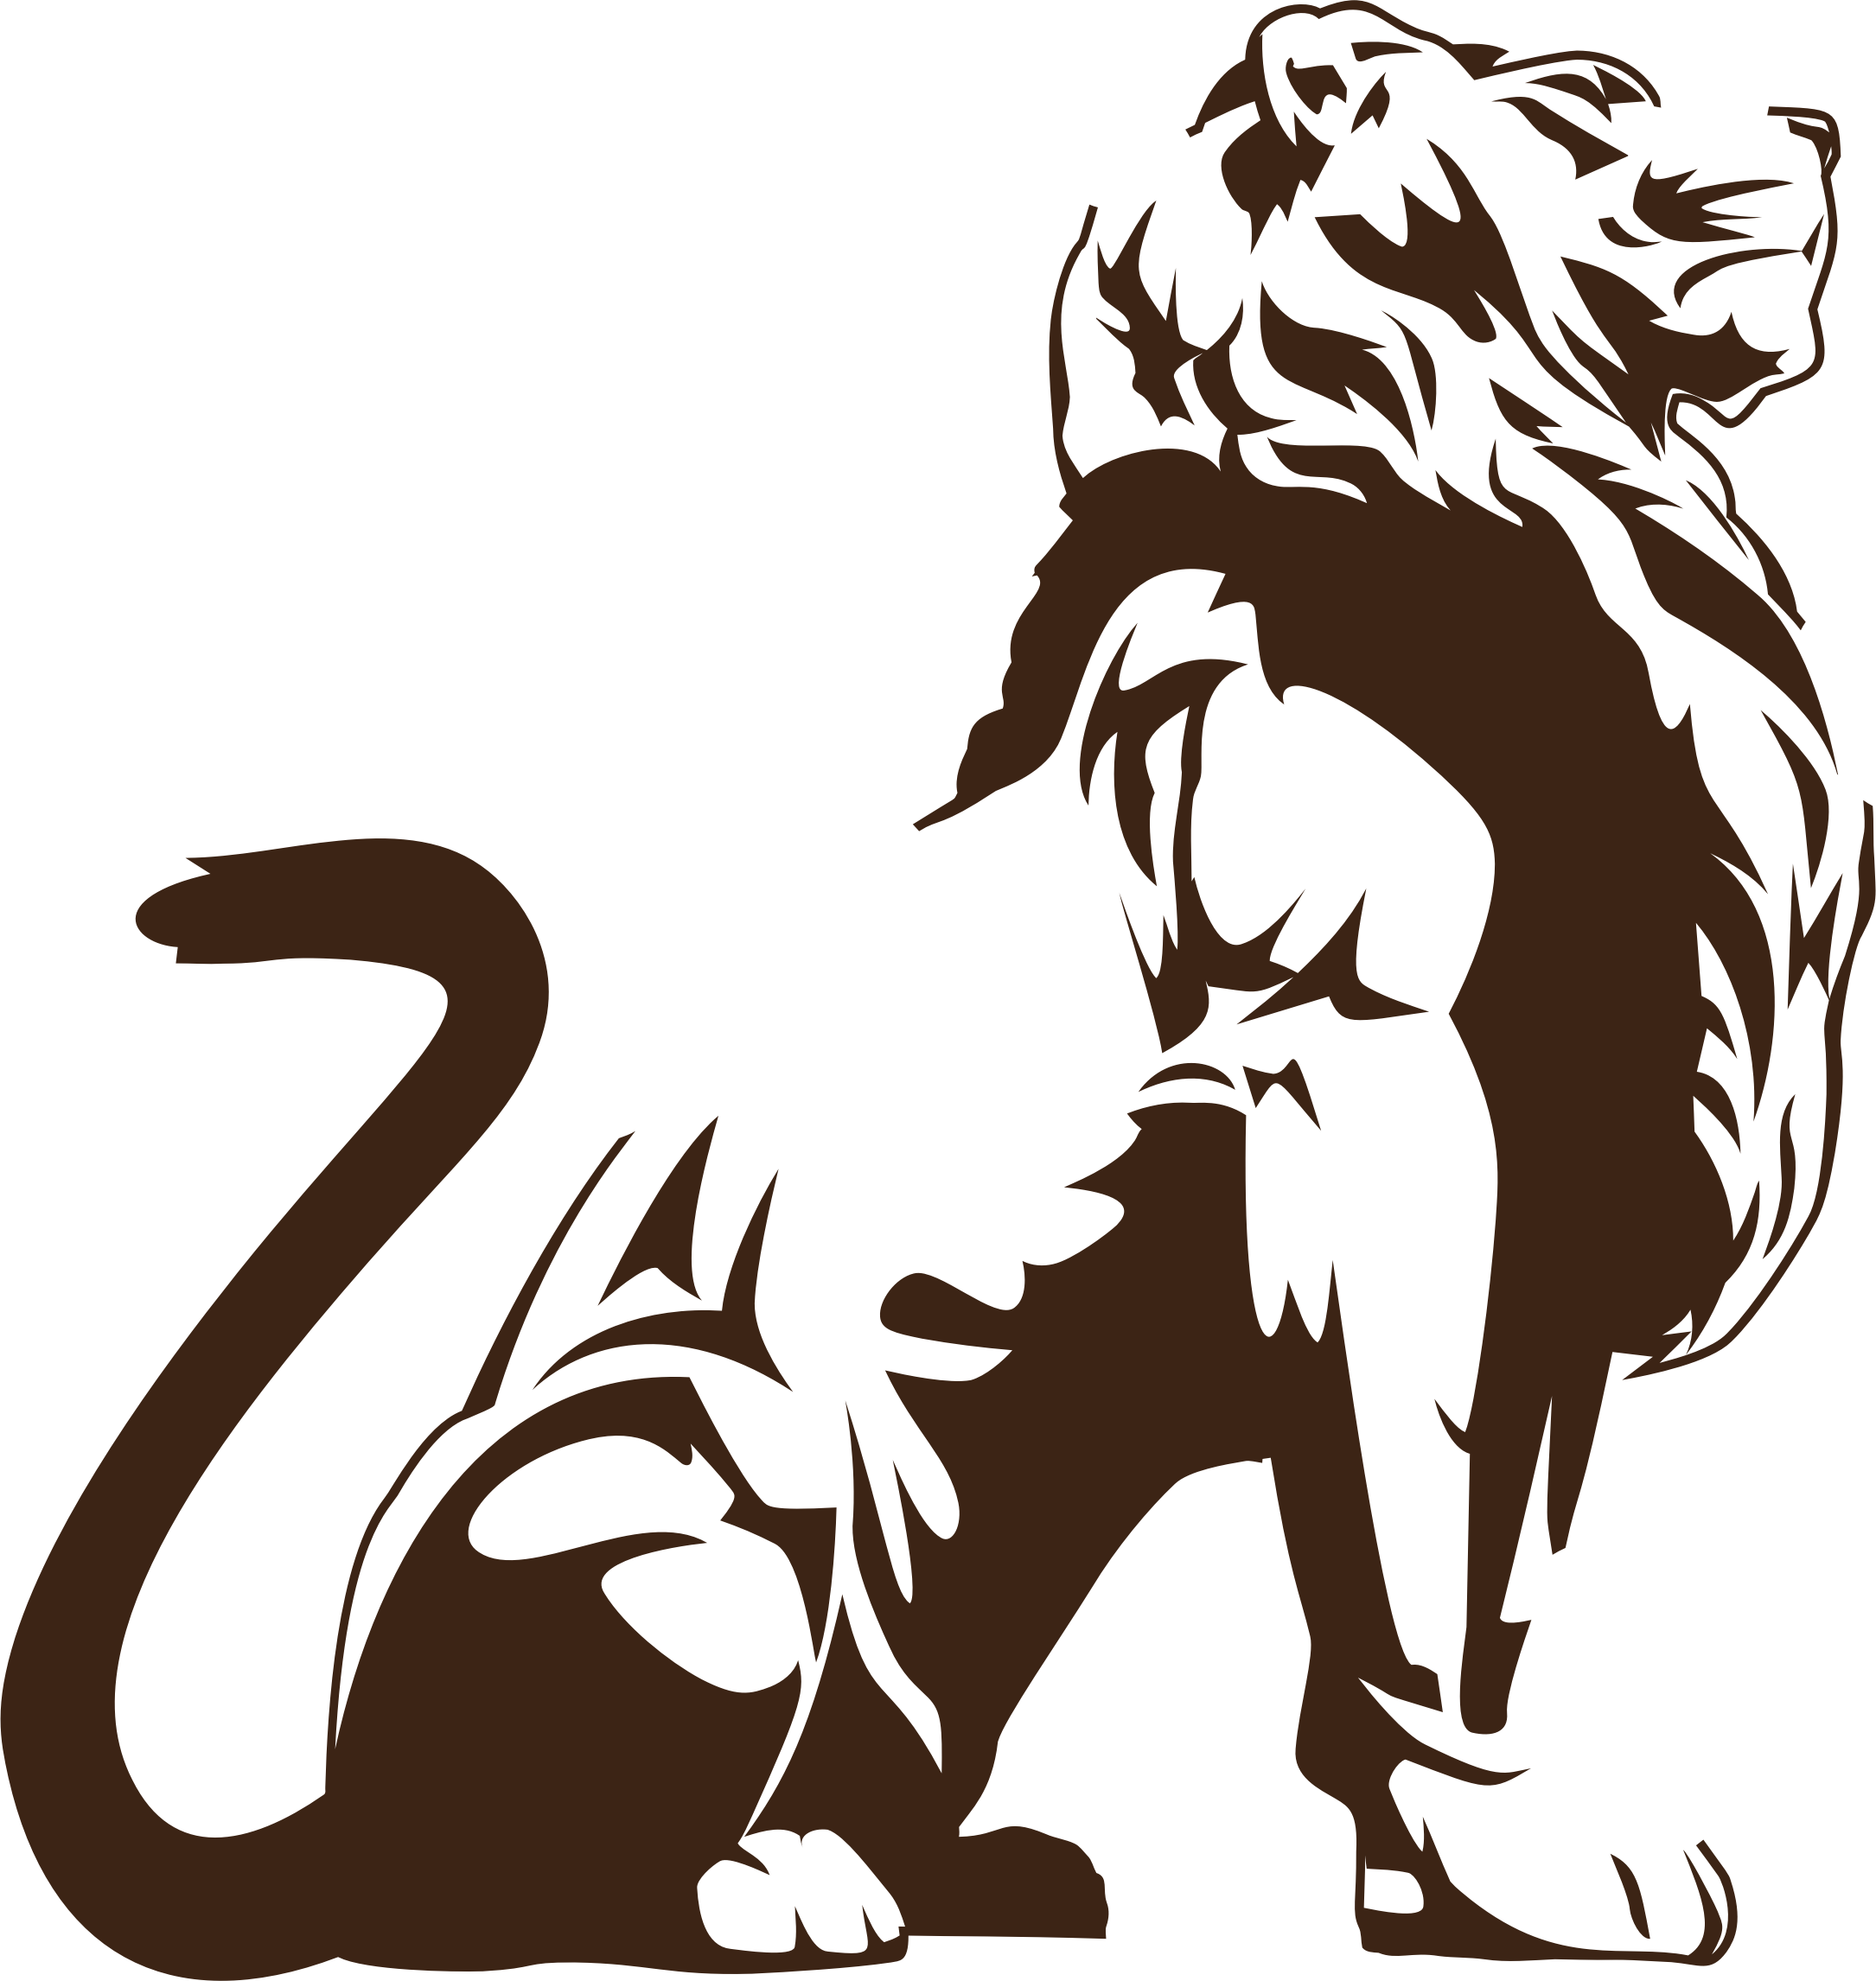 Clipart stylistic big image. Lion silhouette png jpg royalty free